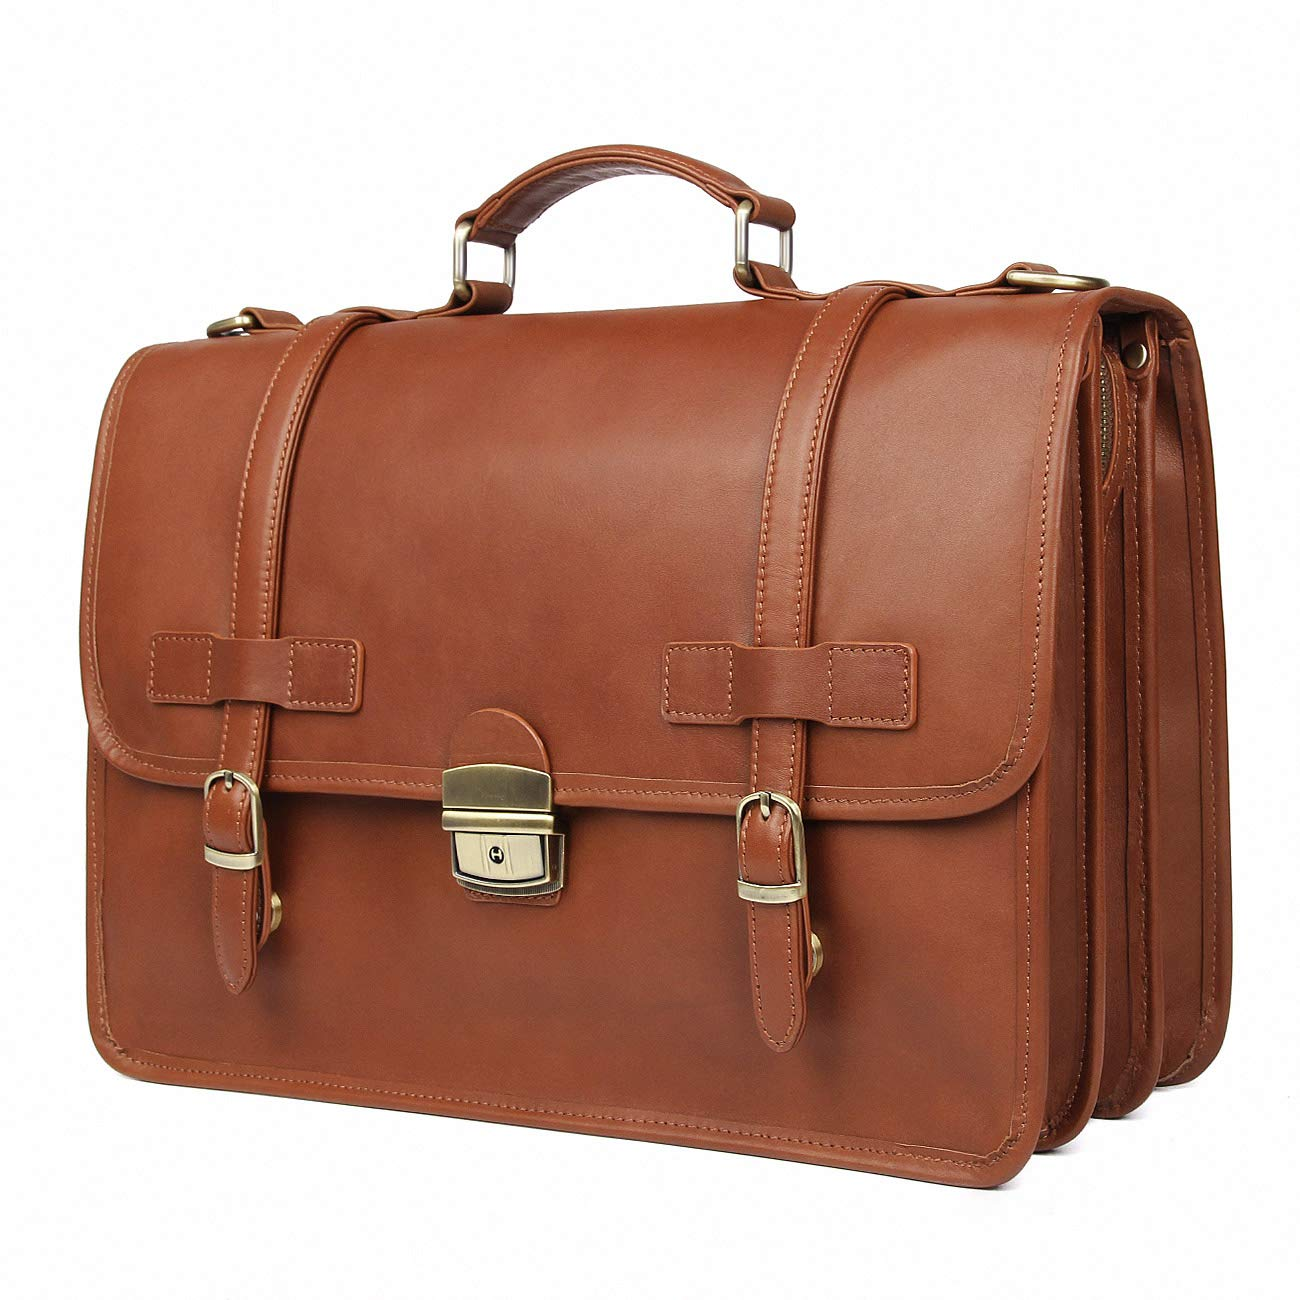 Augus Genuine Leather Briefcase Messenger for Men Business Travel Duffle Laptop Flapover Bag Fit 14 inch Laptop(Brown-1)